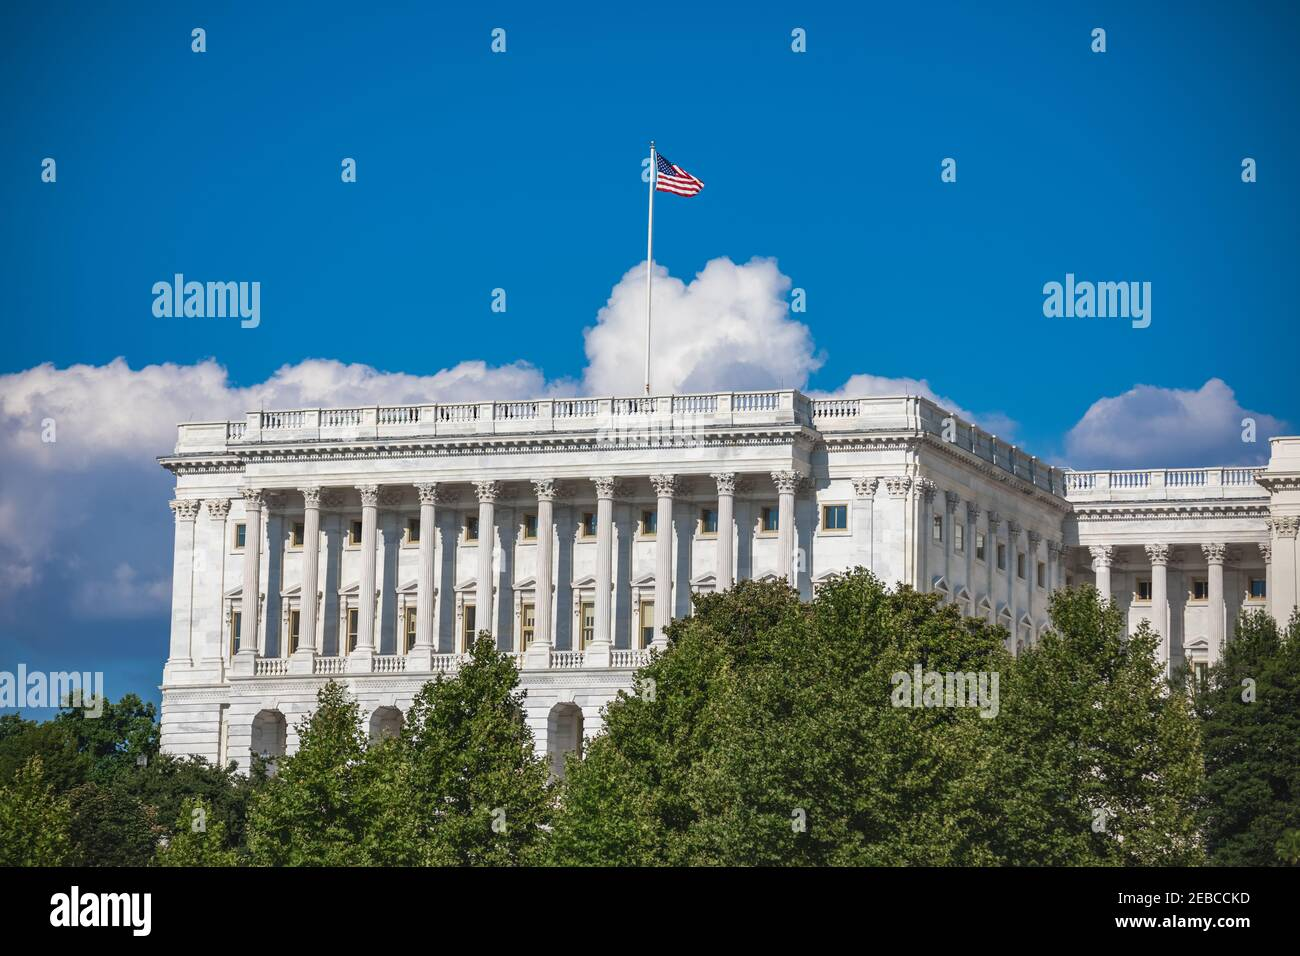 American flag flying over the exterior of the Senate chamber of the US Capitol building in Washington, DC Stock Photo